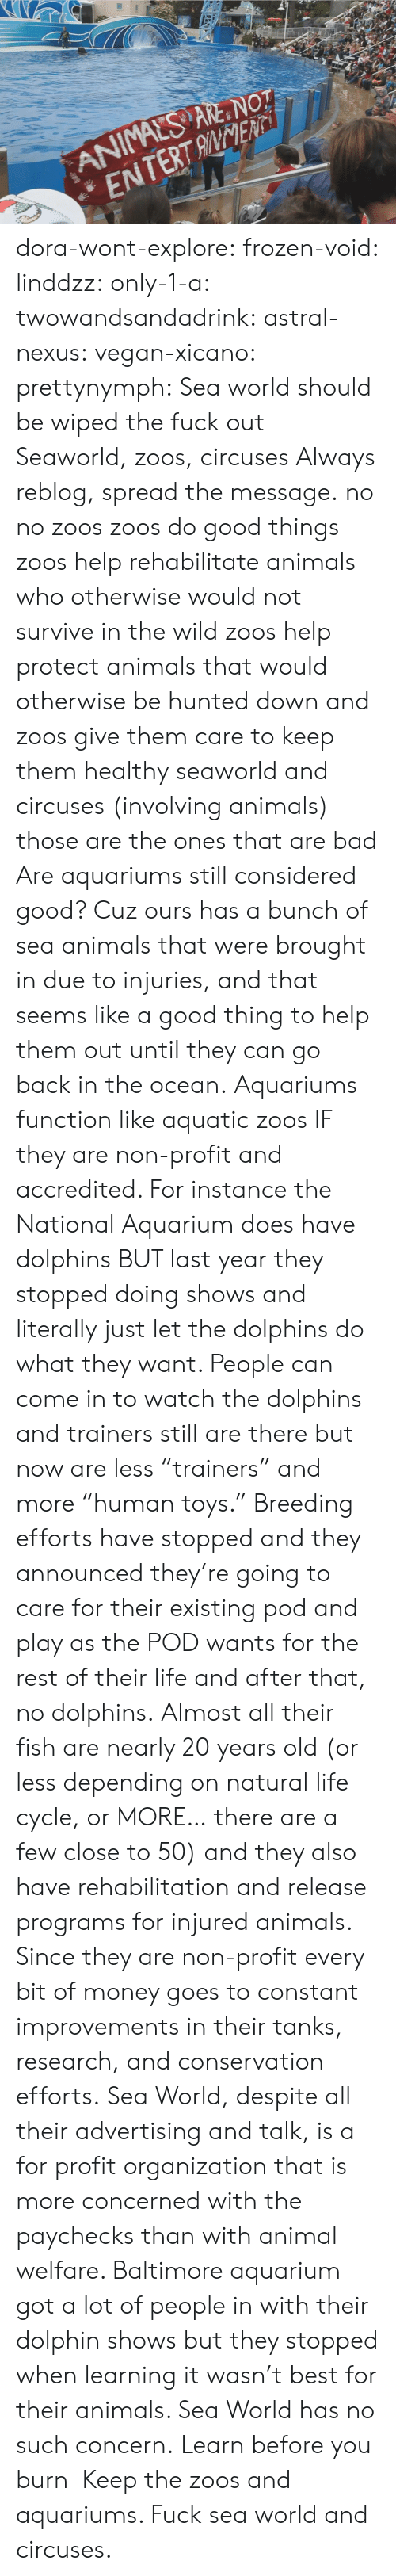 "concerned: ANIMALS ARE NOT  ENTERTANENTi dora-wont-explore:   frozen-void:  linddzz:  only-1-a:  twowandsandadrink:  astral-nexus:  vegan-xicano:  prettynymph:  Sea world should be wiped the fuck out  Seaworld, zoos, circuses  Always reblog, spread the message.  no no zoos zoos do good things zoos help rehabilitate animals who otherwise would not survive in the wild zoos help protect animals that would otherwise be hunted down and zoos give them care to keep them healthy seaworld and circuses (involving animals) those are the ones that are bad  Are aquariums still considered good? Cuz ours has a bunch of sea animals that were brought in due to injuries, and that seems like a good thing to help them out until they can go back in the ocean.  Aquariums function like aquatic zoos IF they are non-profit and accredited. For instance the National Aquarium does have dolphins BUT last year they stopped doing shows and literally just let the dolphins do what they want. People can come in to watch the dolphins and trainers still are there but now are less ""trainers"" and more ""human toys."" Breeding efforts have stopped and they announced they're going to care for their existing pod and play as the POD wants for the rest of their life and after that, no dolphins. Almost all their fish are nearly 20 years old (or less depending on natural life cycle, or MORE… there are a few close to 50) and they also have rehabilitation and release programs for injured animals. Since they are non-profit every bit of money goes to constant improvements in their tanks, research, and conservation efforts. Sea World, despite all their advertising and talk, is a for profit organization that is more concerned with the paychecks than with animal welfare. Baltimore aquarium got a lot of people in with their dolphin shows but they stopped when learning it wasn't best for their animals. Sea World has no such concern.  Learn before you burn   Keep the zoos and aquariums. Fuck sea world and circuses."